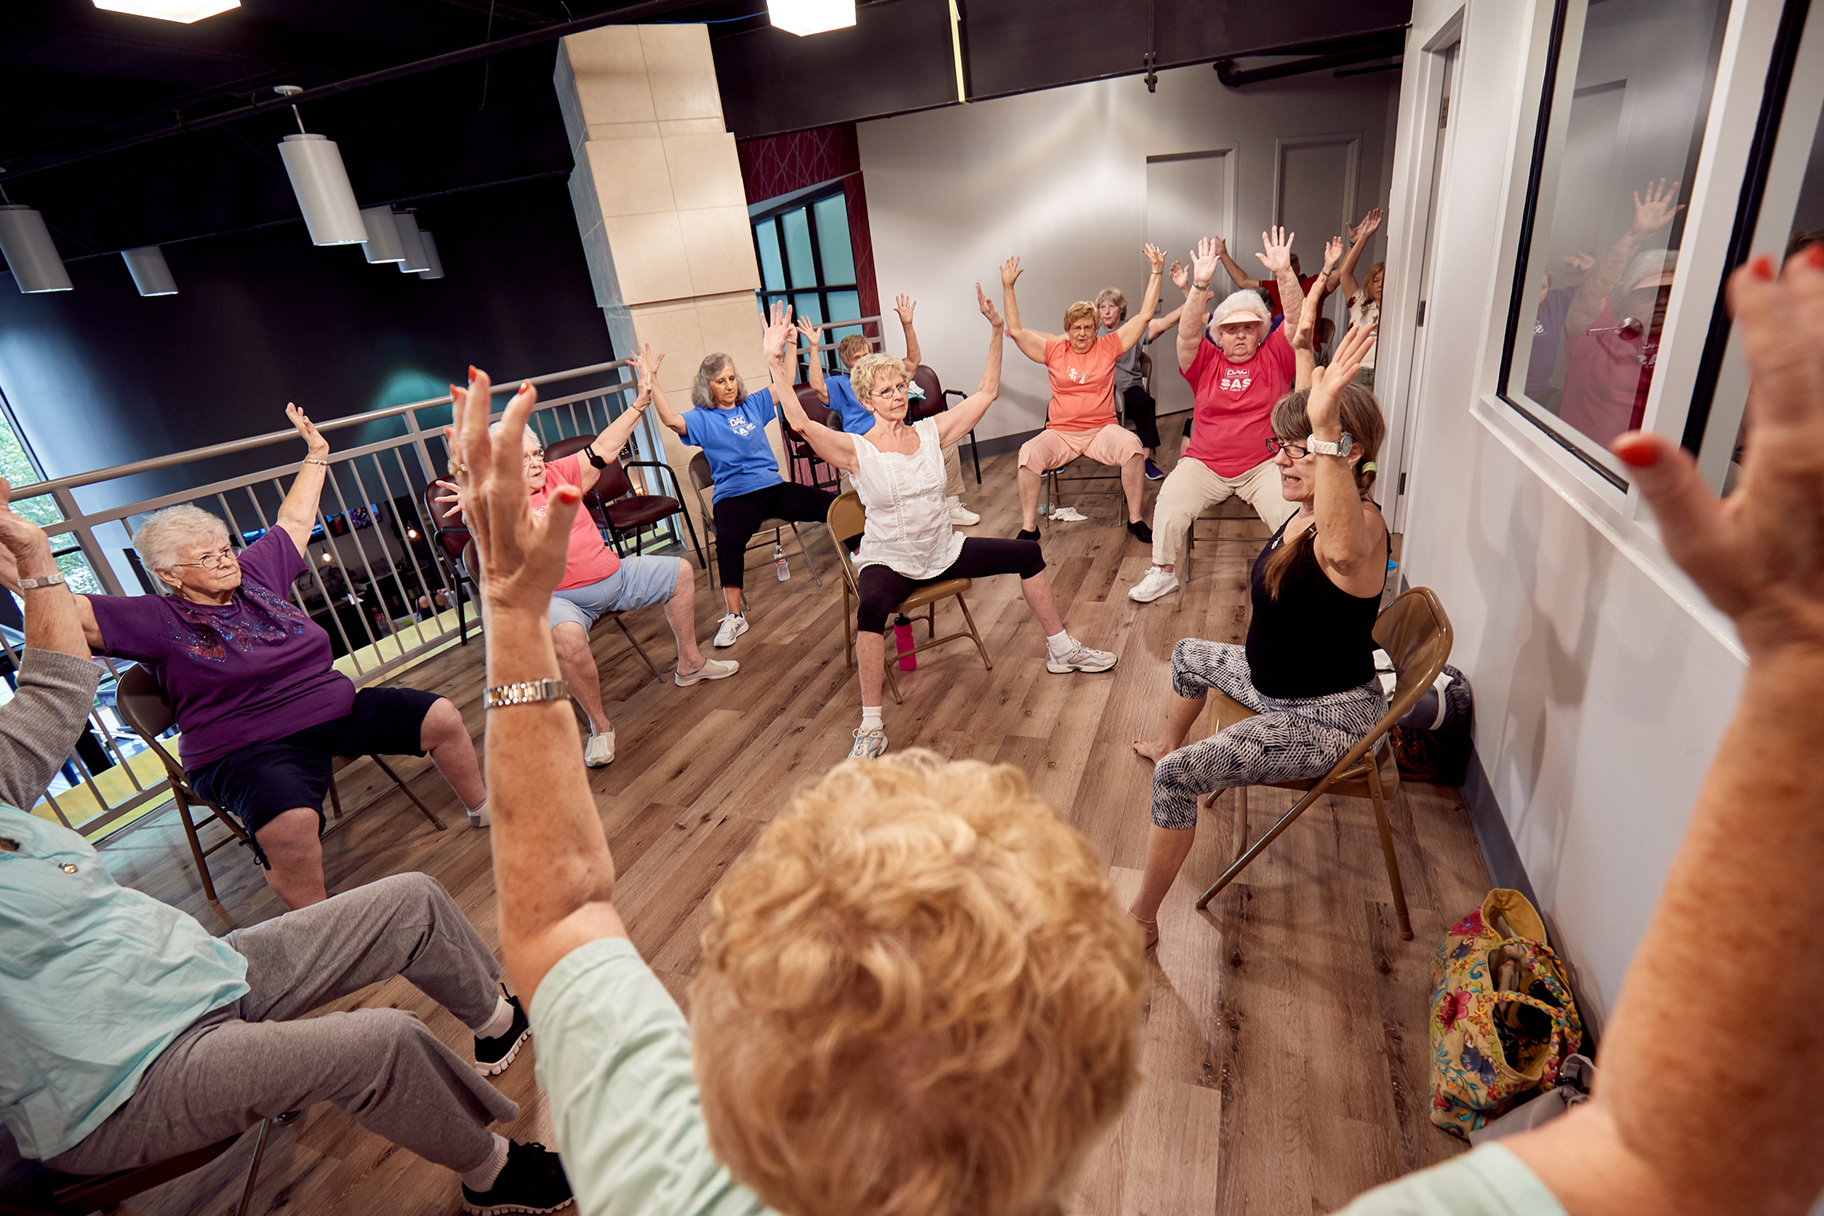 Senior Yoga - Moves your whole body through a complete series of seated and standing yoga poses. Chair support is offered to safely perform movements. See Schedule →